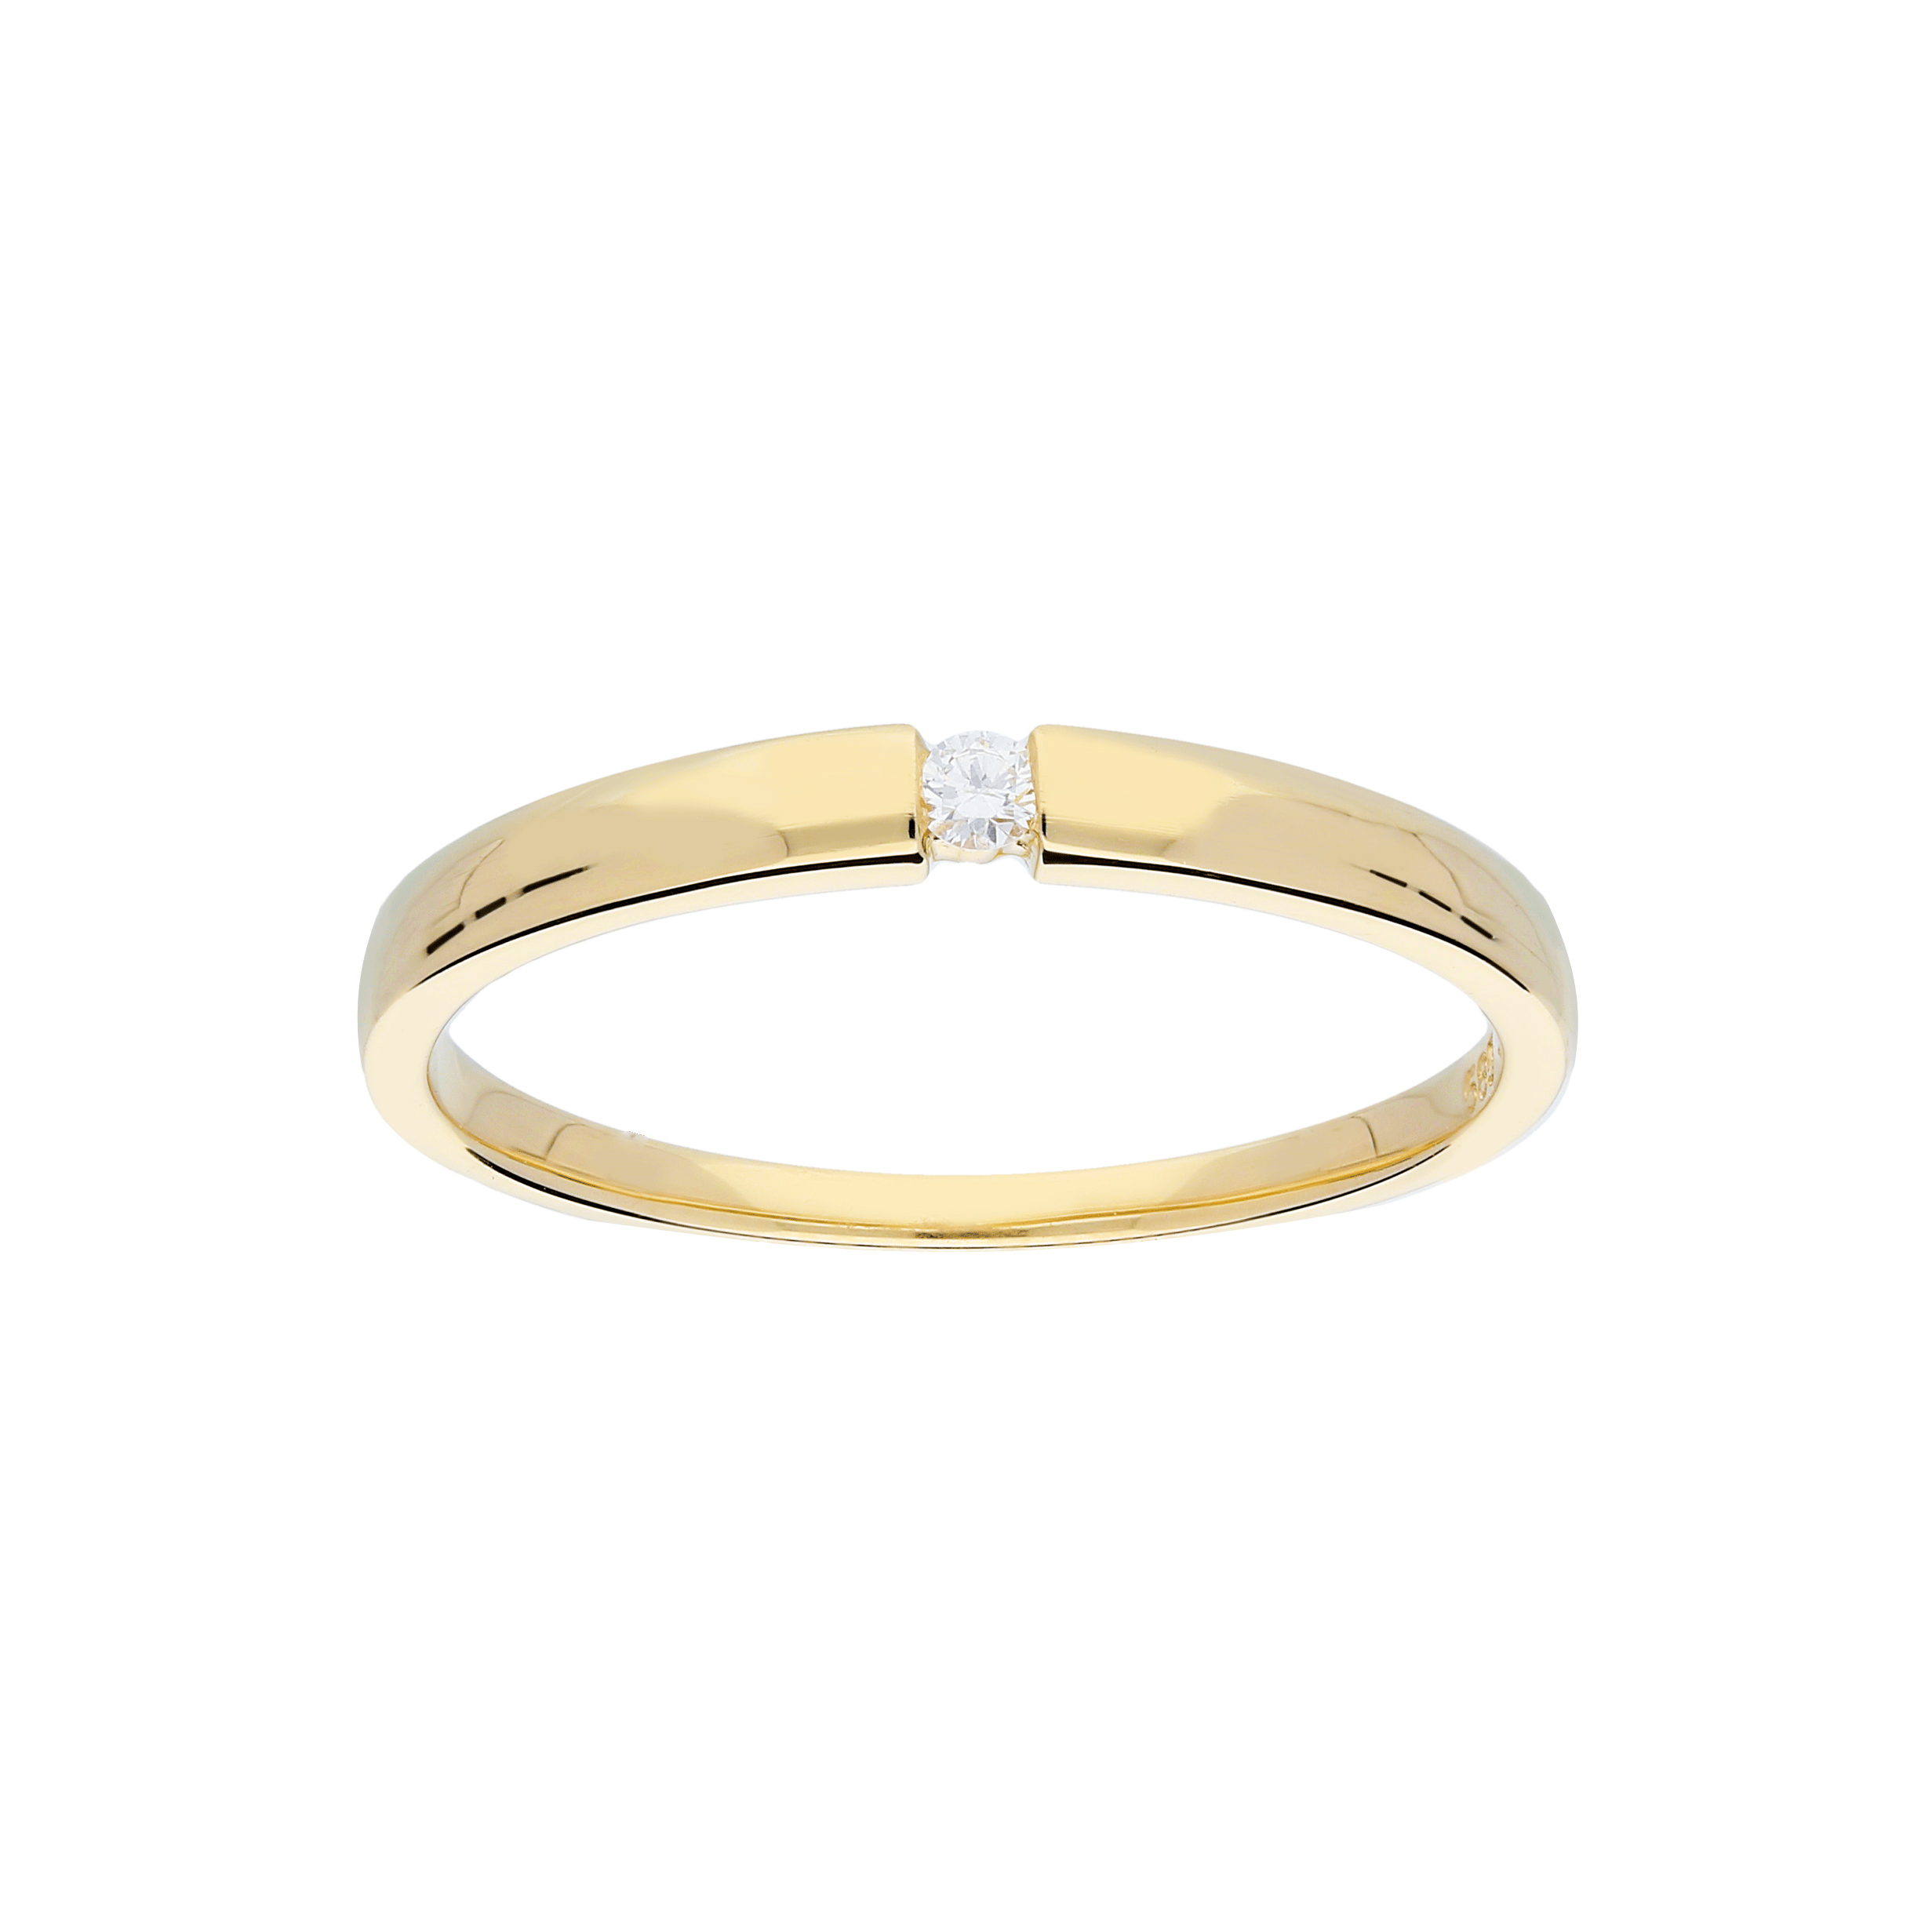 Glow Gouden Ring Glanzend Diamant 1 0.03ct G si 214.2007.56